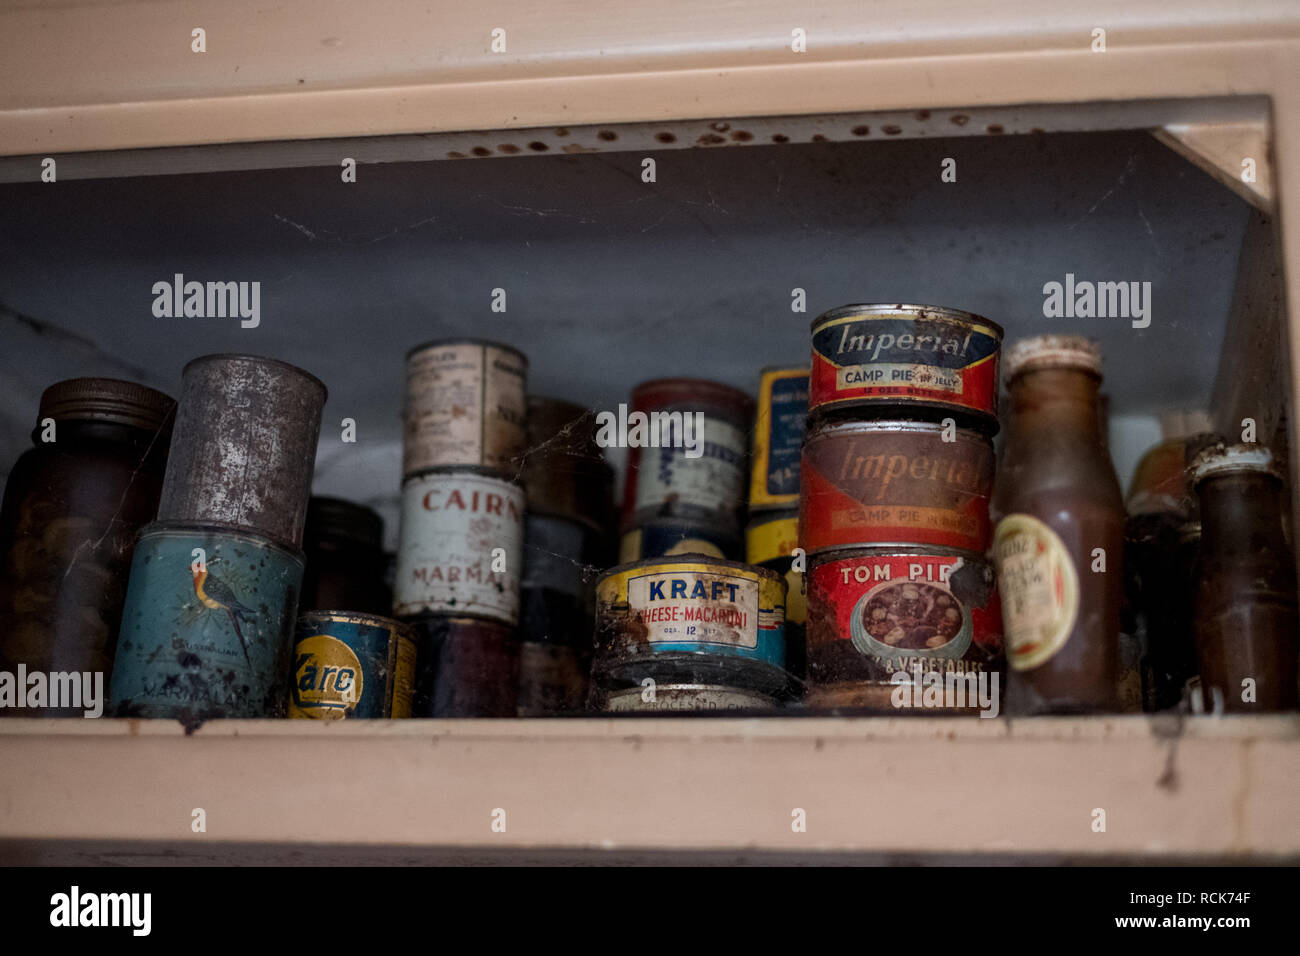 Old tins of food in cupboard in kitchen in derelict 1930s deco style house, Rayners Lane, Middlesex UK - Stock Image